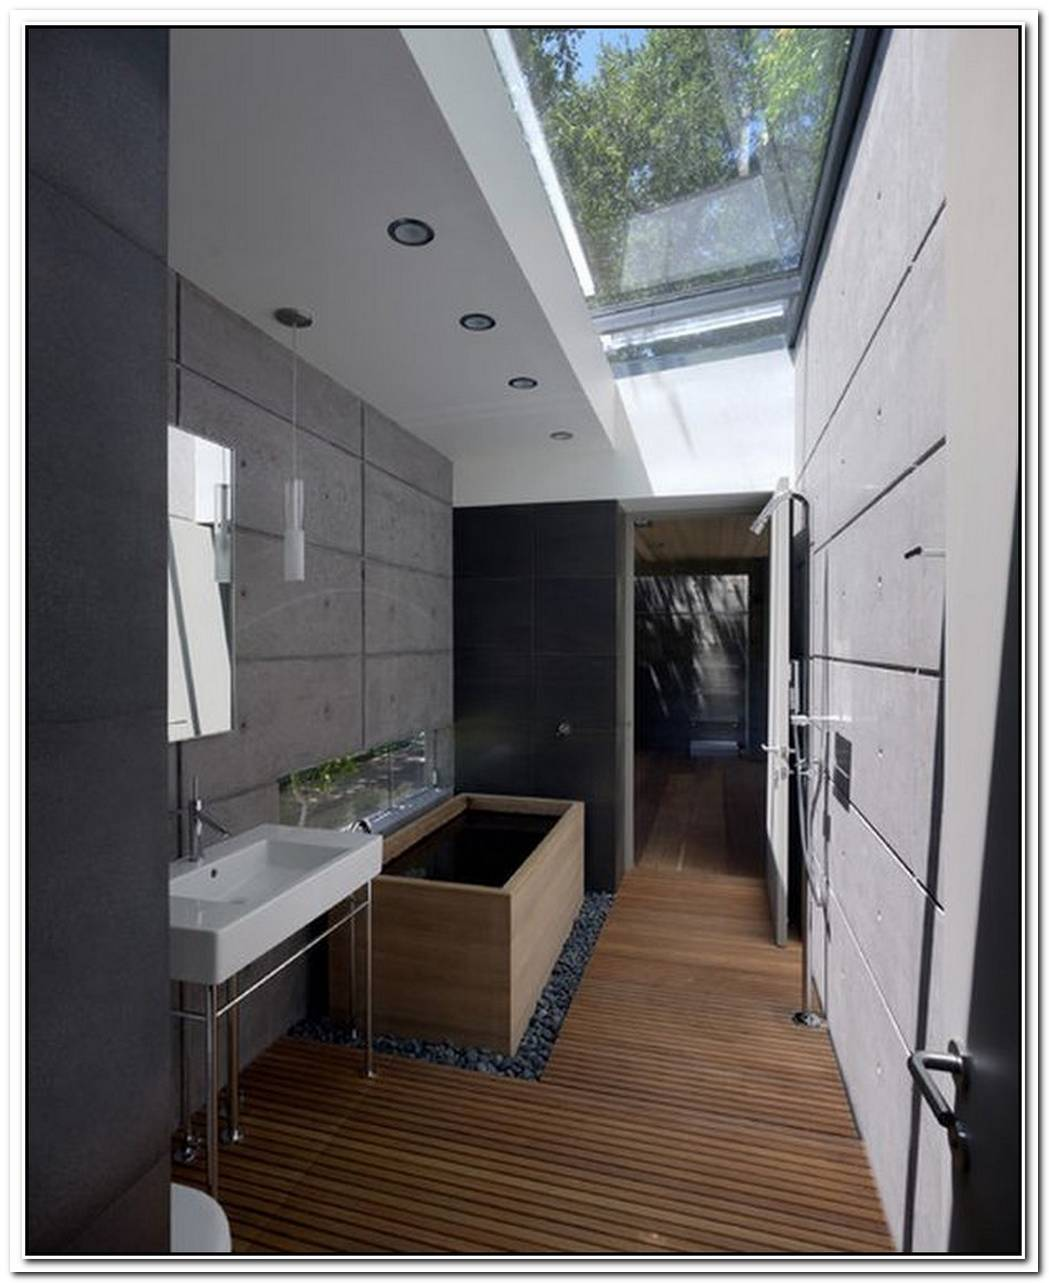 Skylight Bathroom Interior